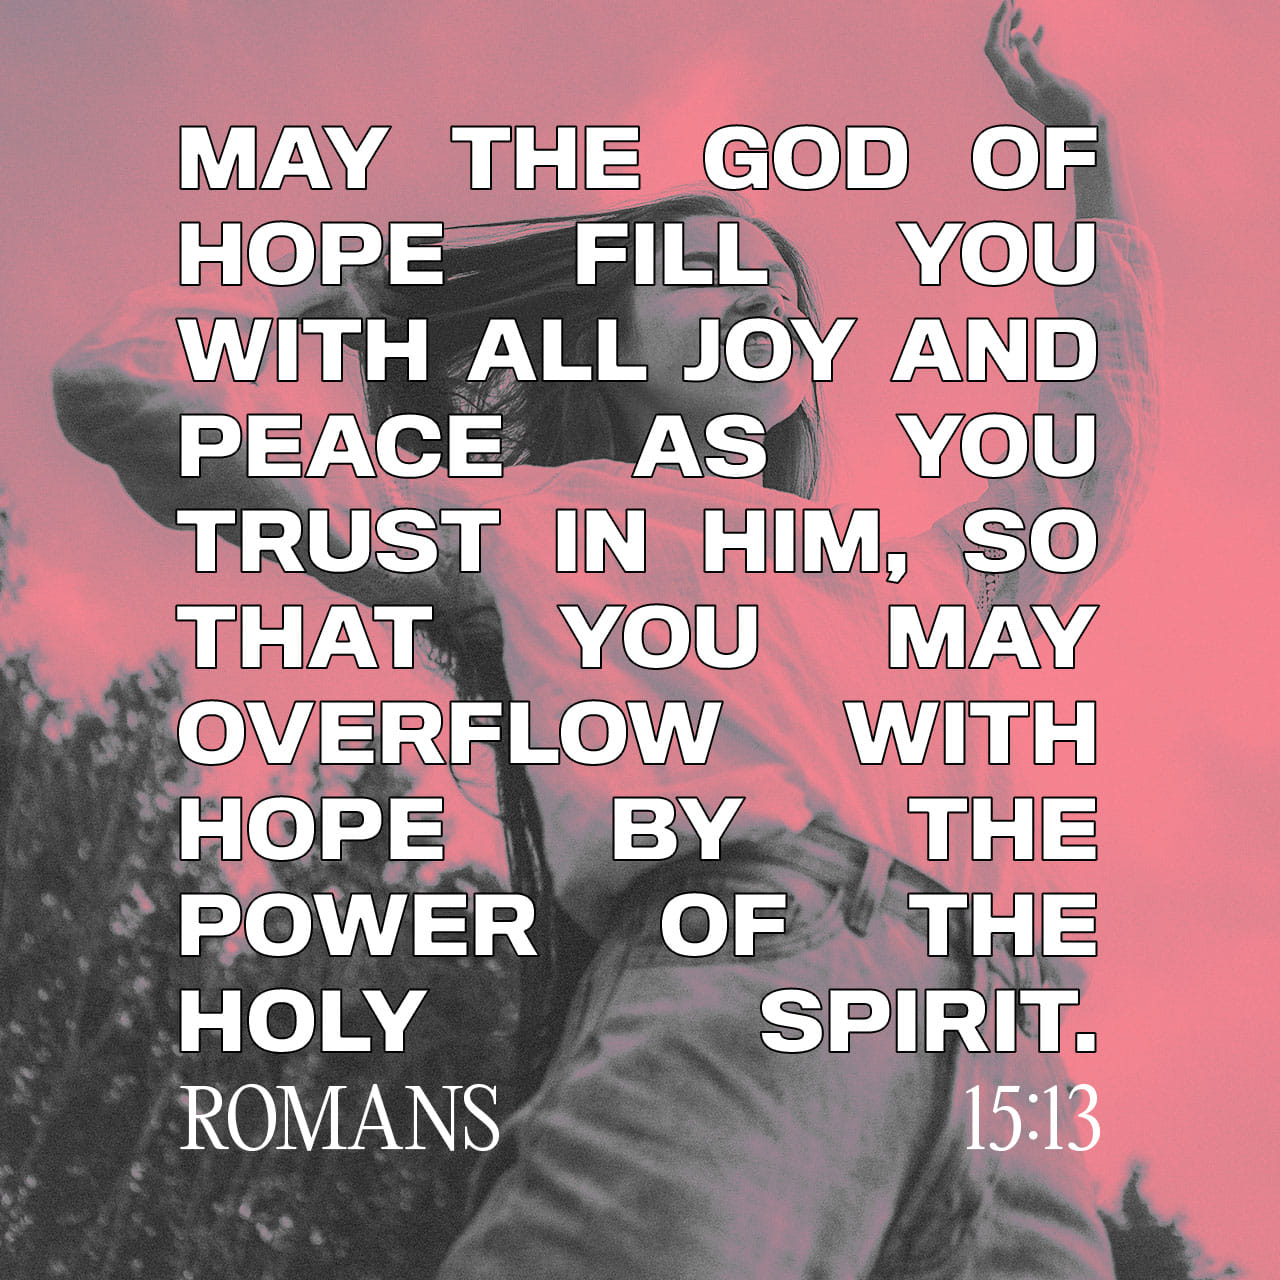 May the God of hope fill you with all joy and peace as you trust in him, so that you may overflow with hope by the power of the Holy Spirit. - Romans 15:13 - Verse Image